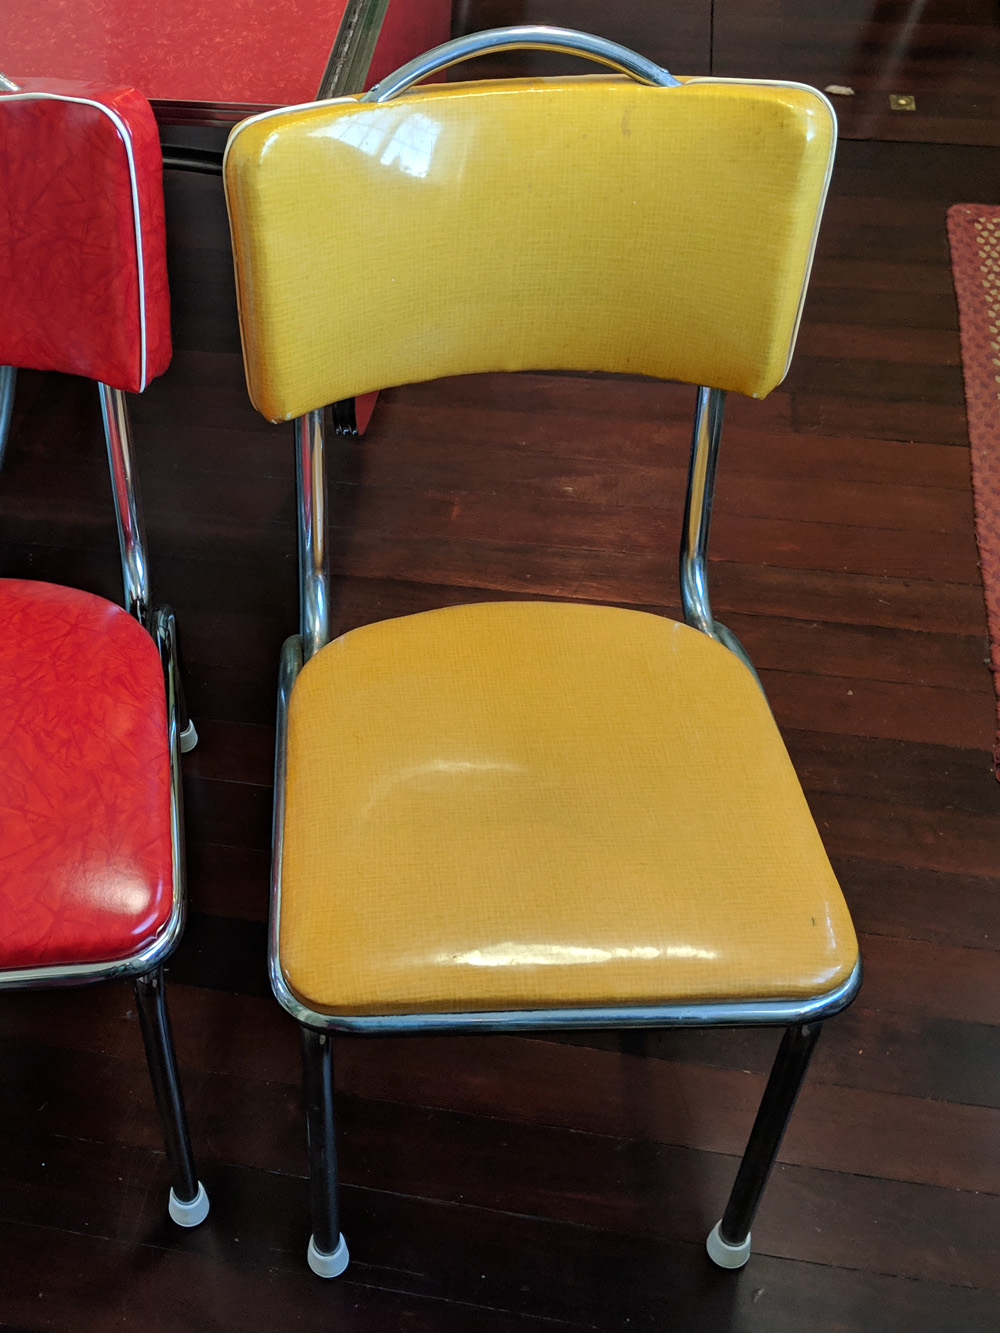 One of the chairs with the original vinyl